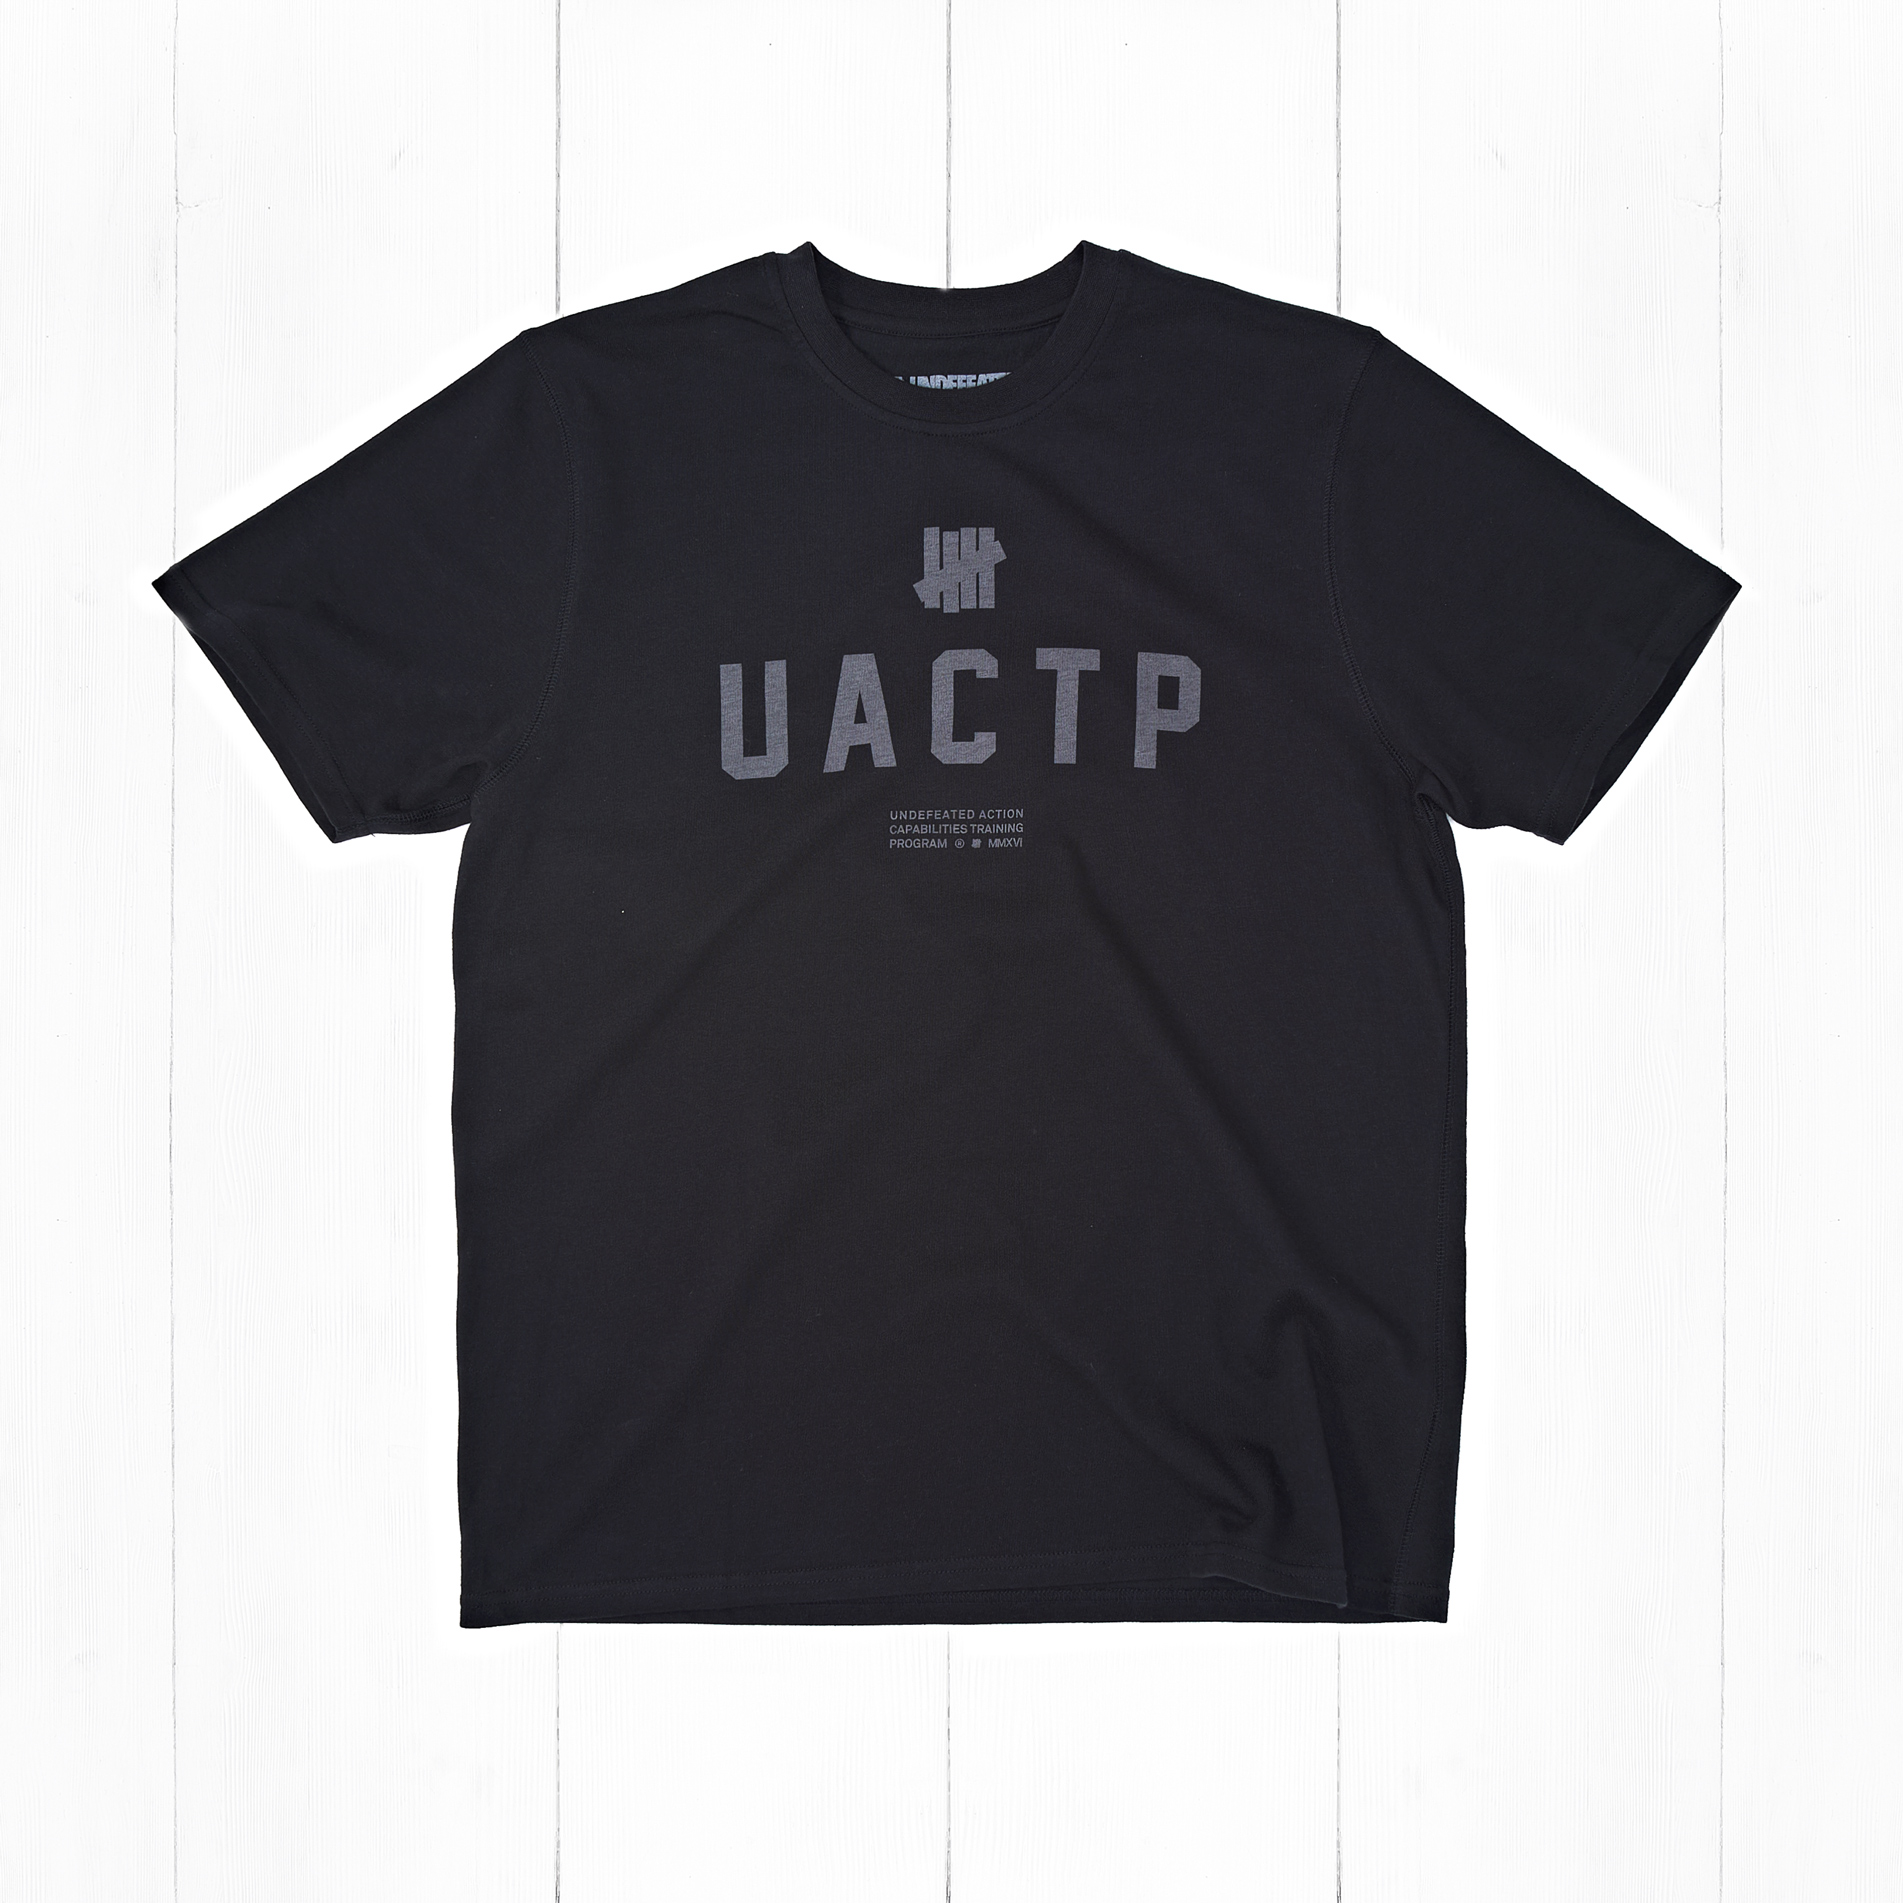 Футболка Undefeated UACTP SS TECH Black